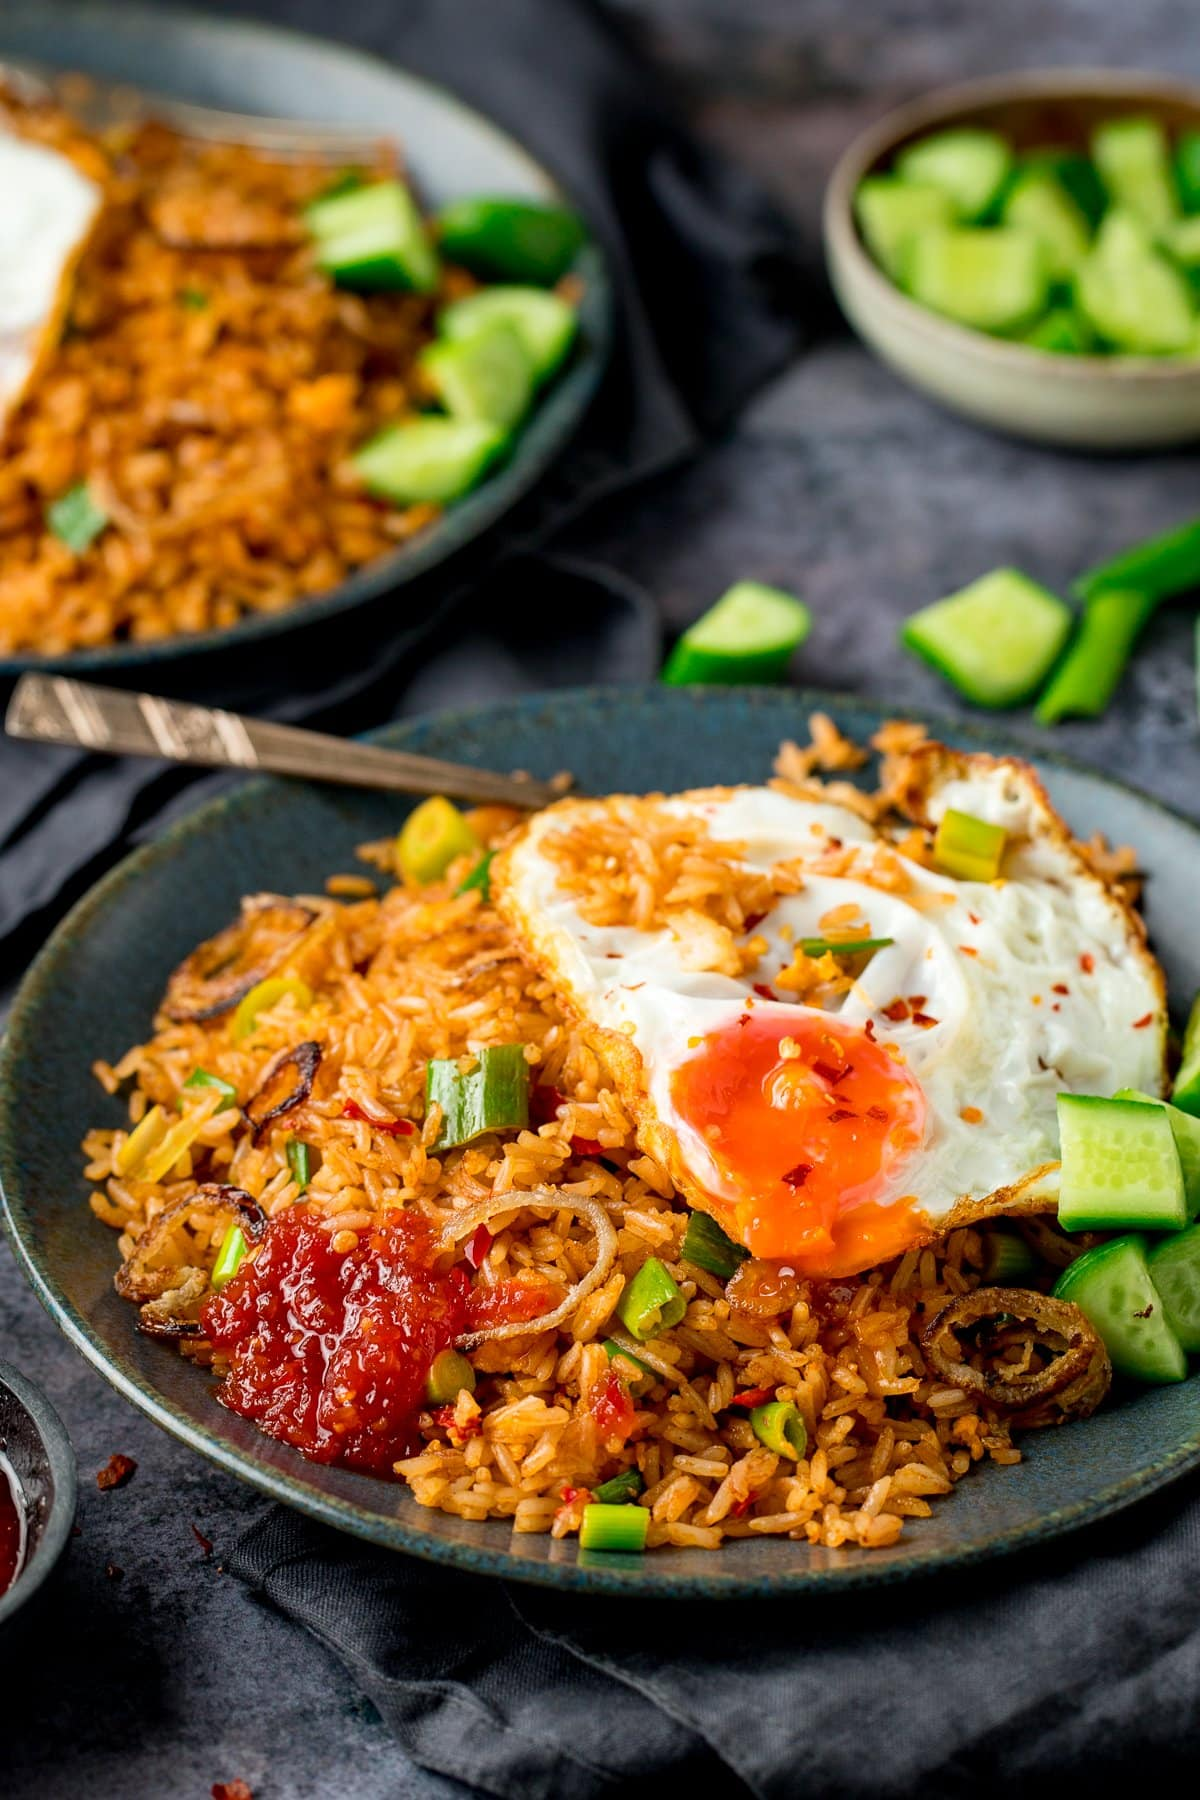 nasi goreng rice on a plate, with a fried egg, chilli sauce and cucumber